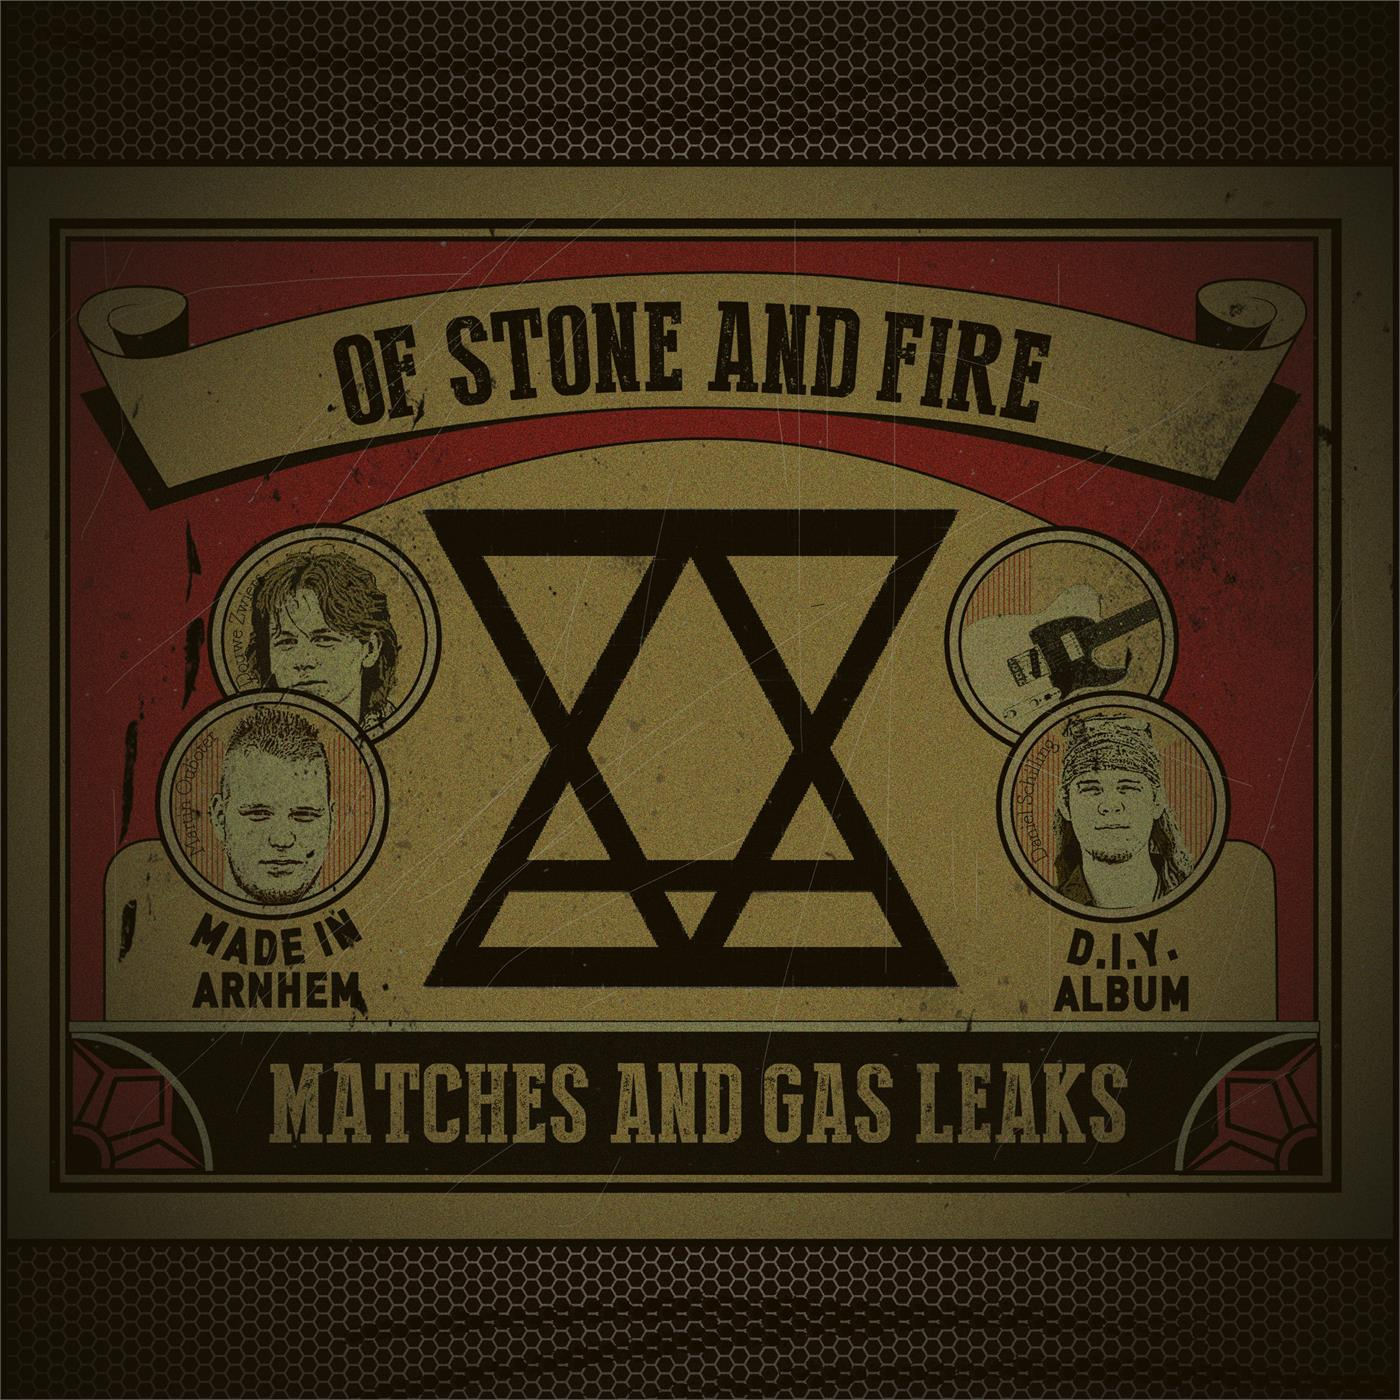 Matches & Gas Leaks